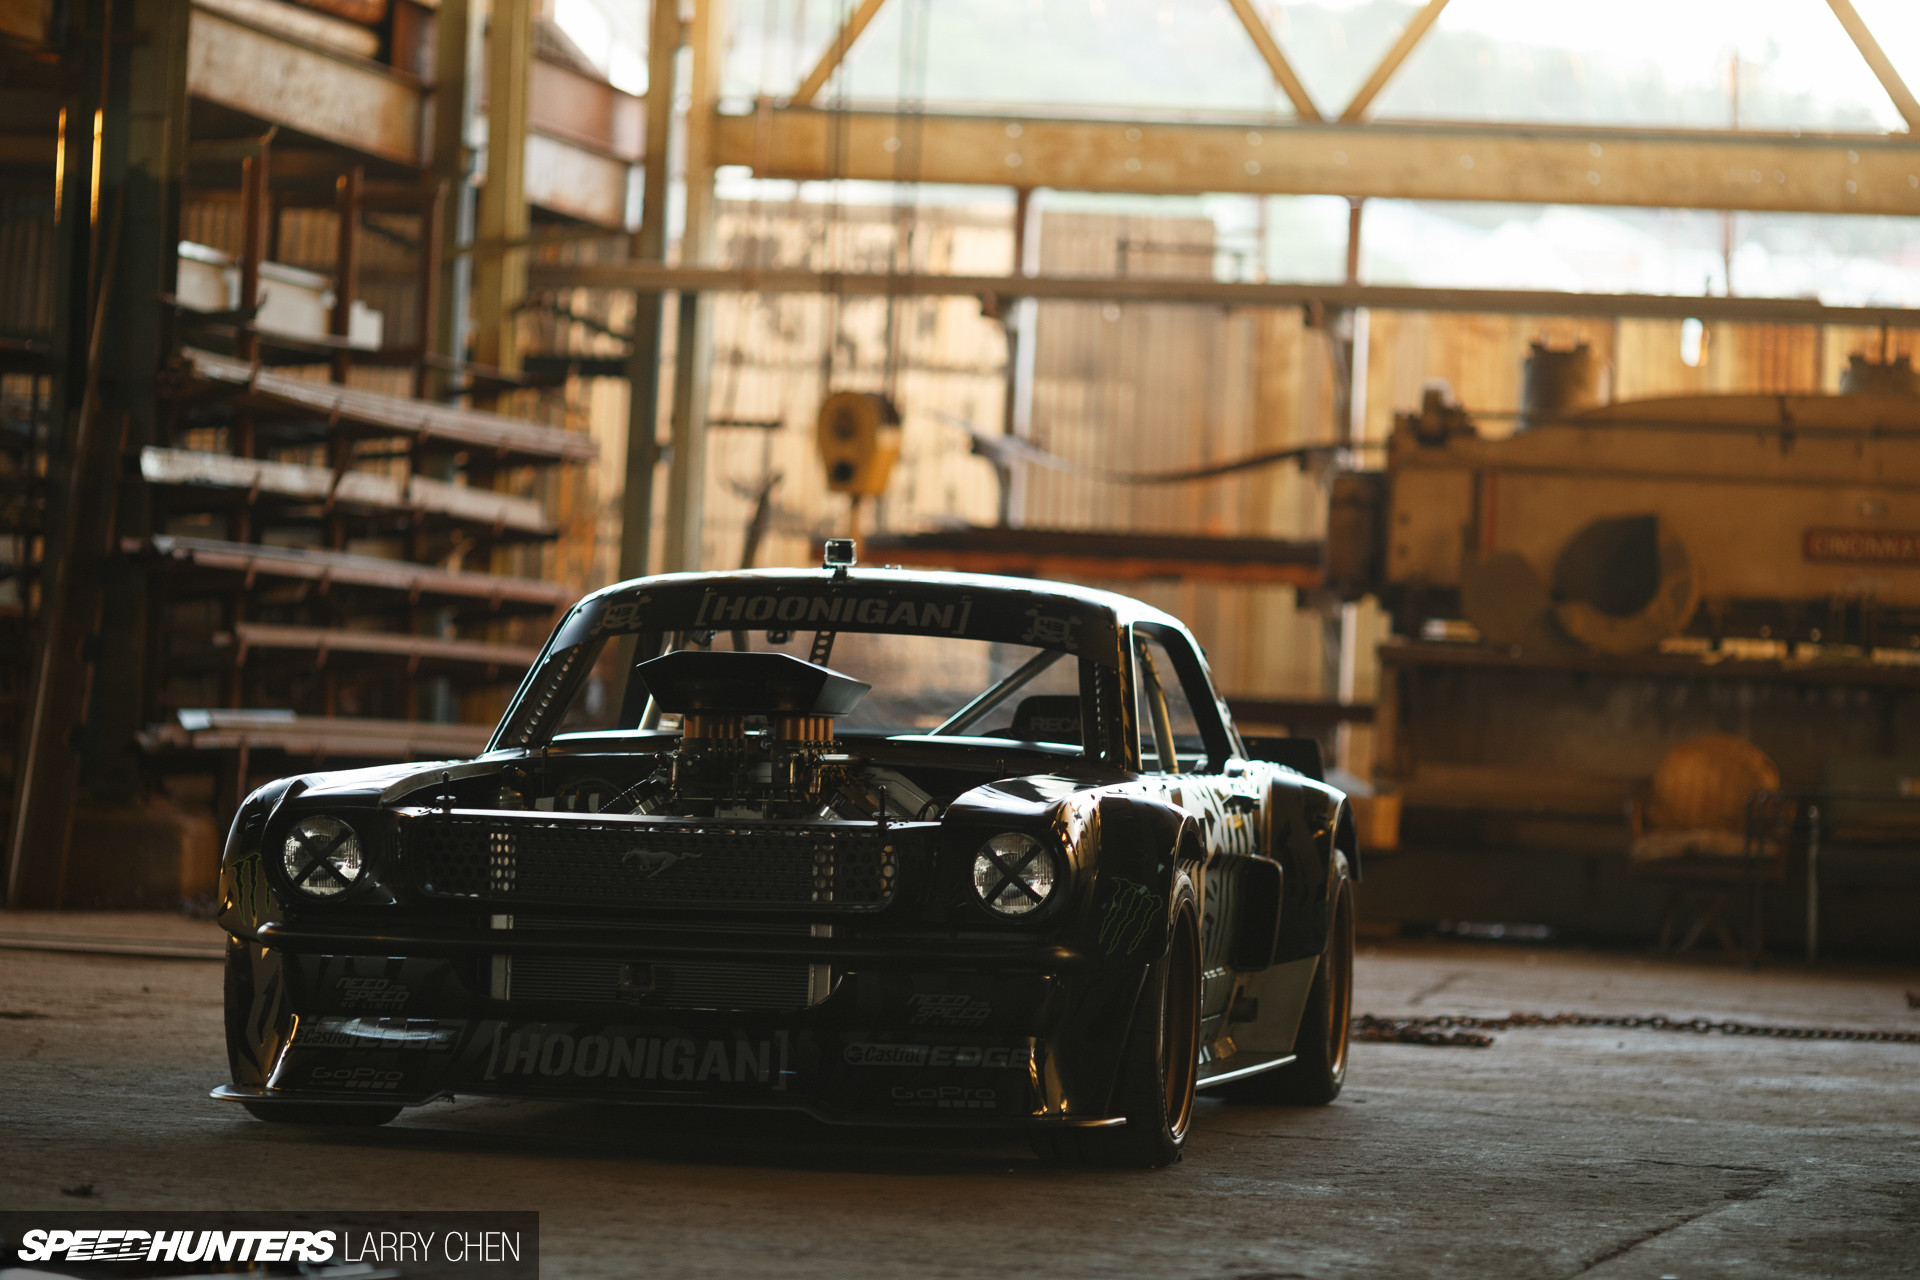 1920x1280 Images From: The Hoonicorn RTR Exposed